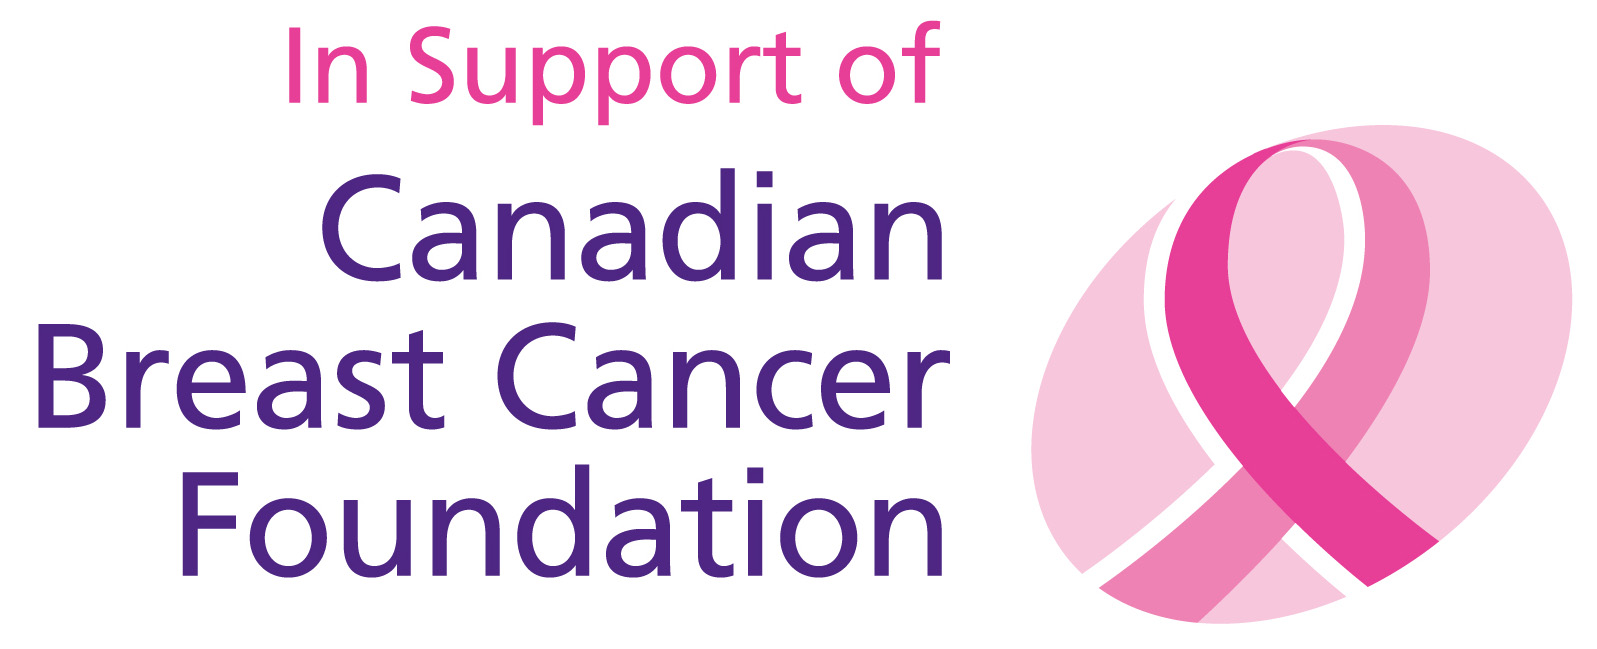 Canadian Breast Cancer Foundation Support logo